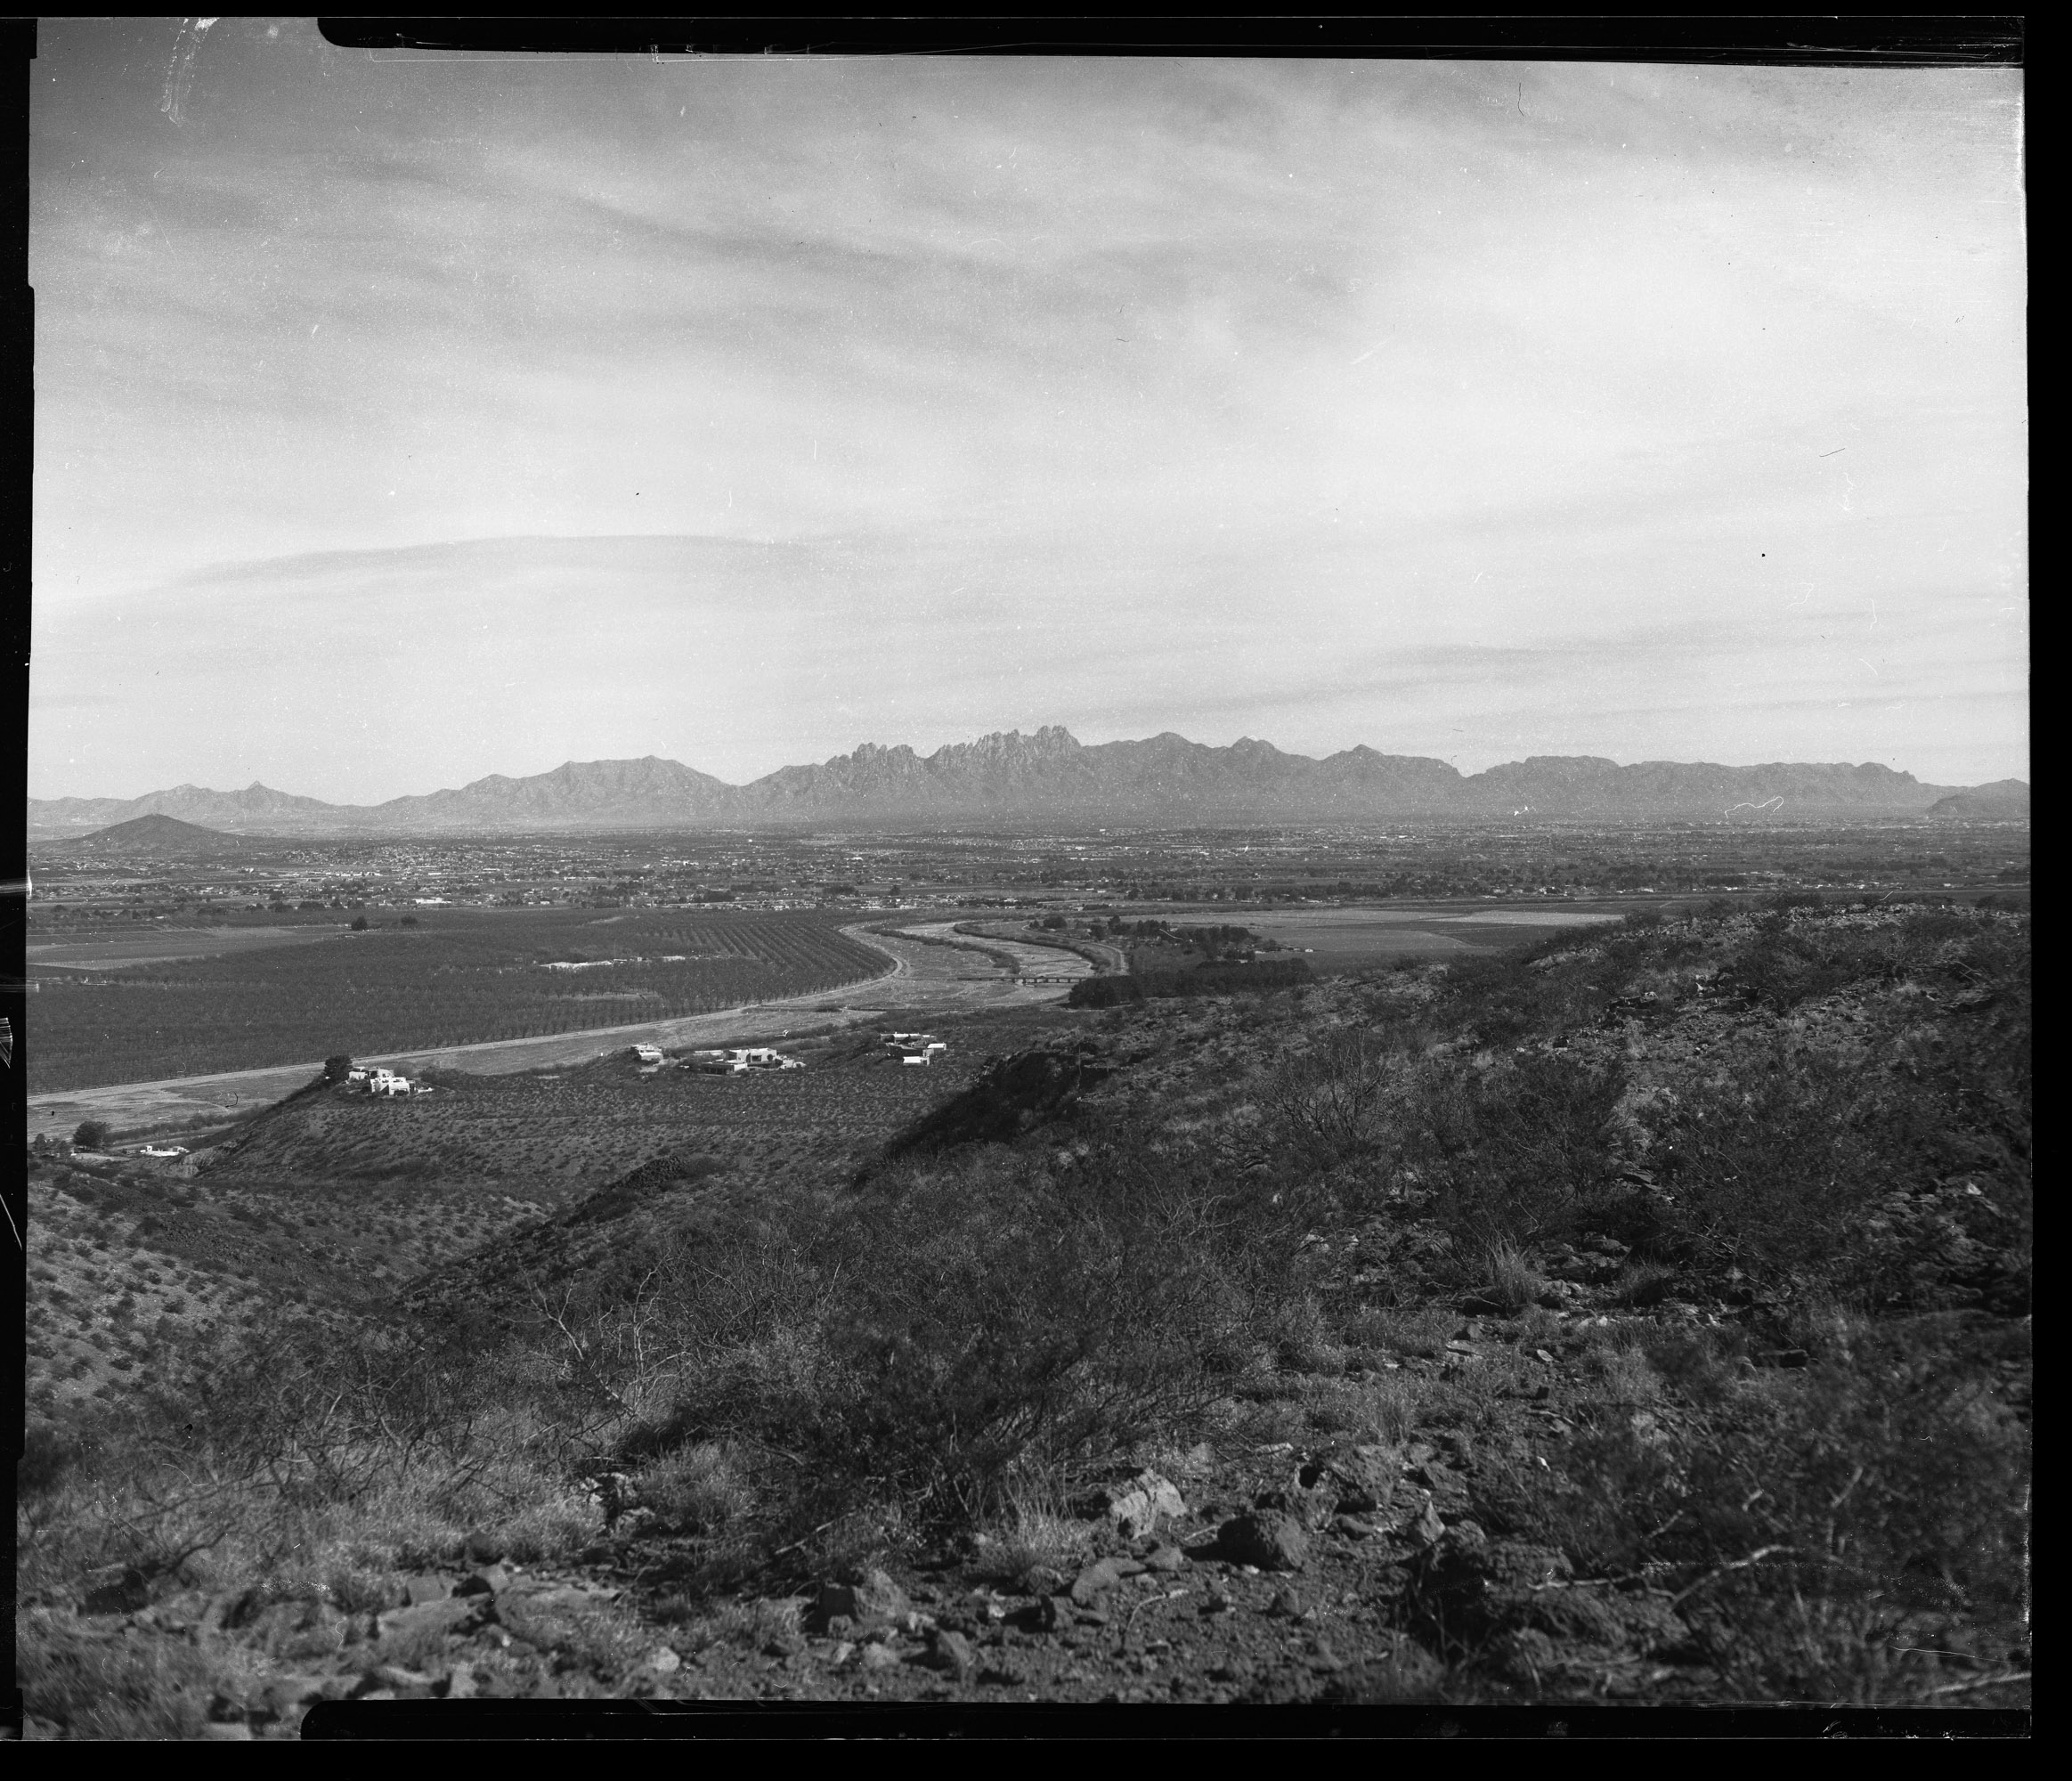 Las Cruces between the Rio Grand and the Organ Mountains from prehistoric trackways national monument. CAMERADACTYL OG 4x5, Expired (1992) Plus-X, Kodak Ektar 127mm